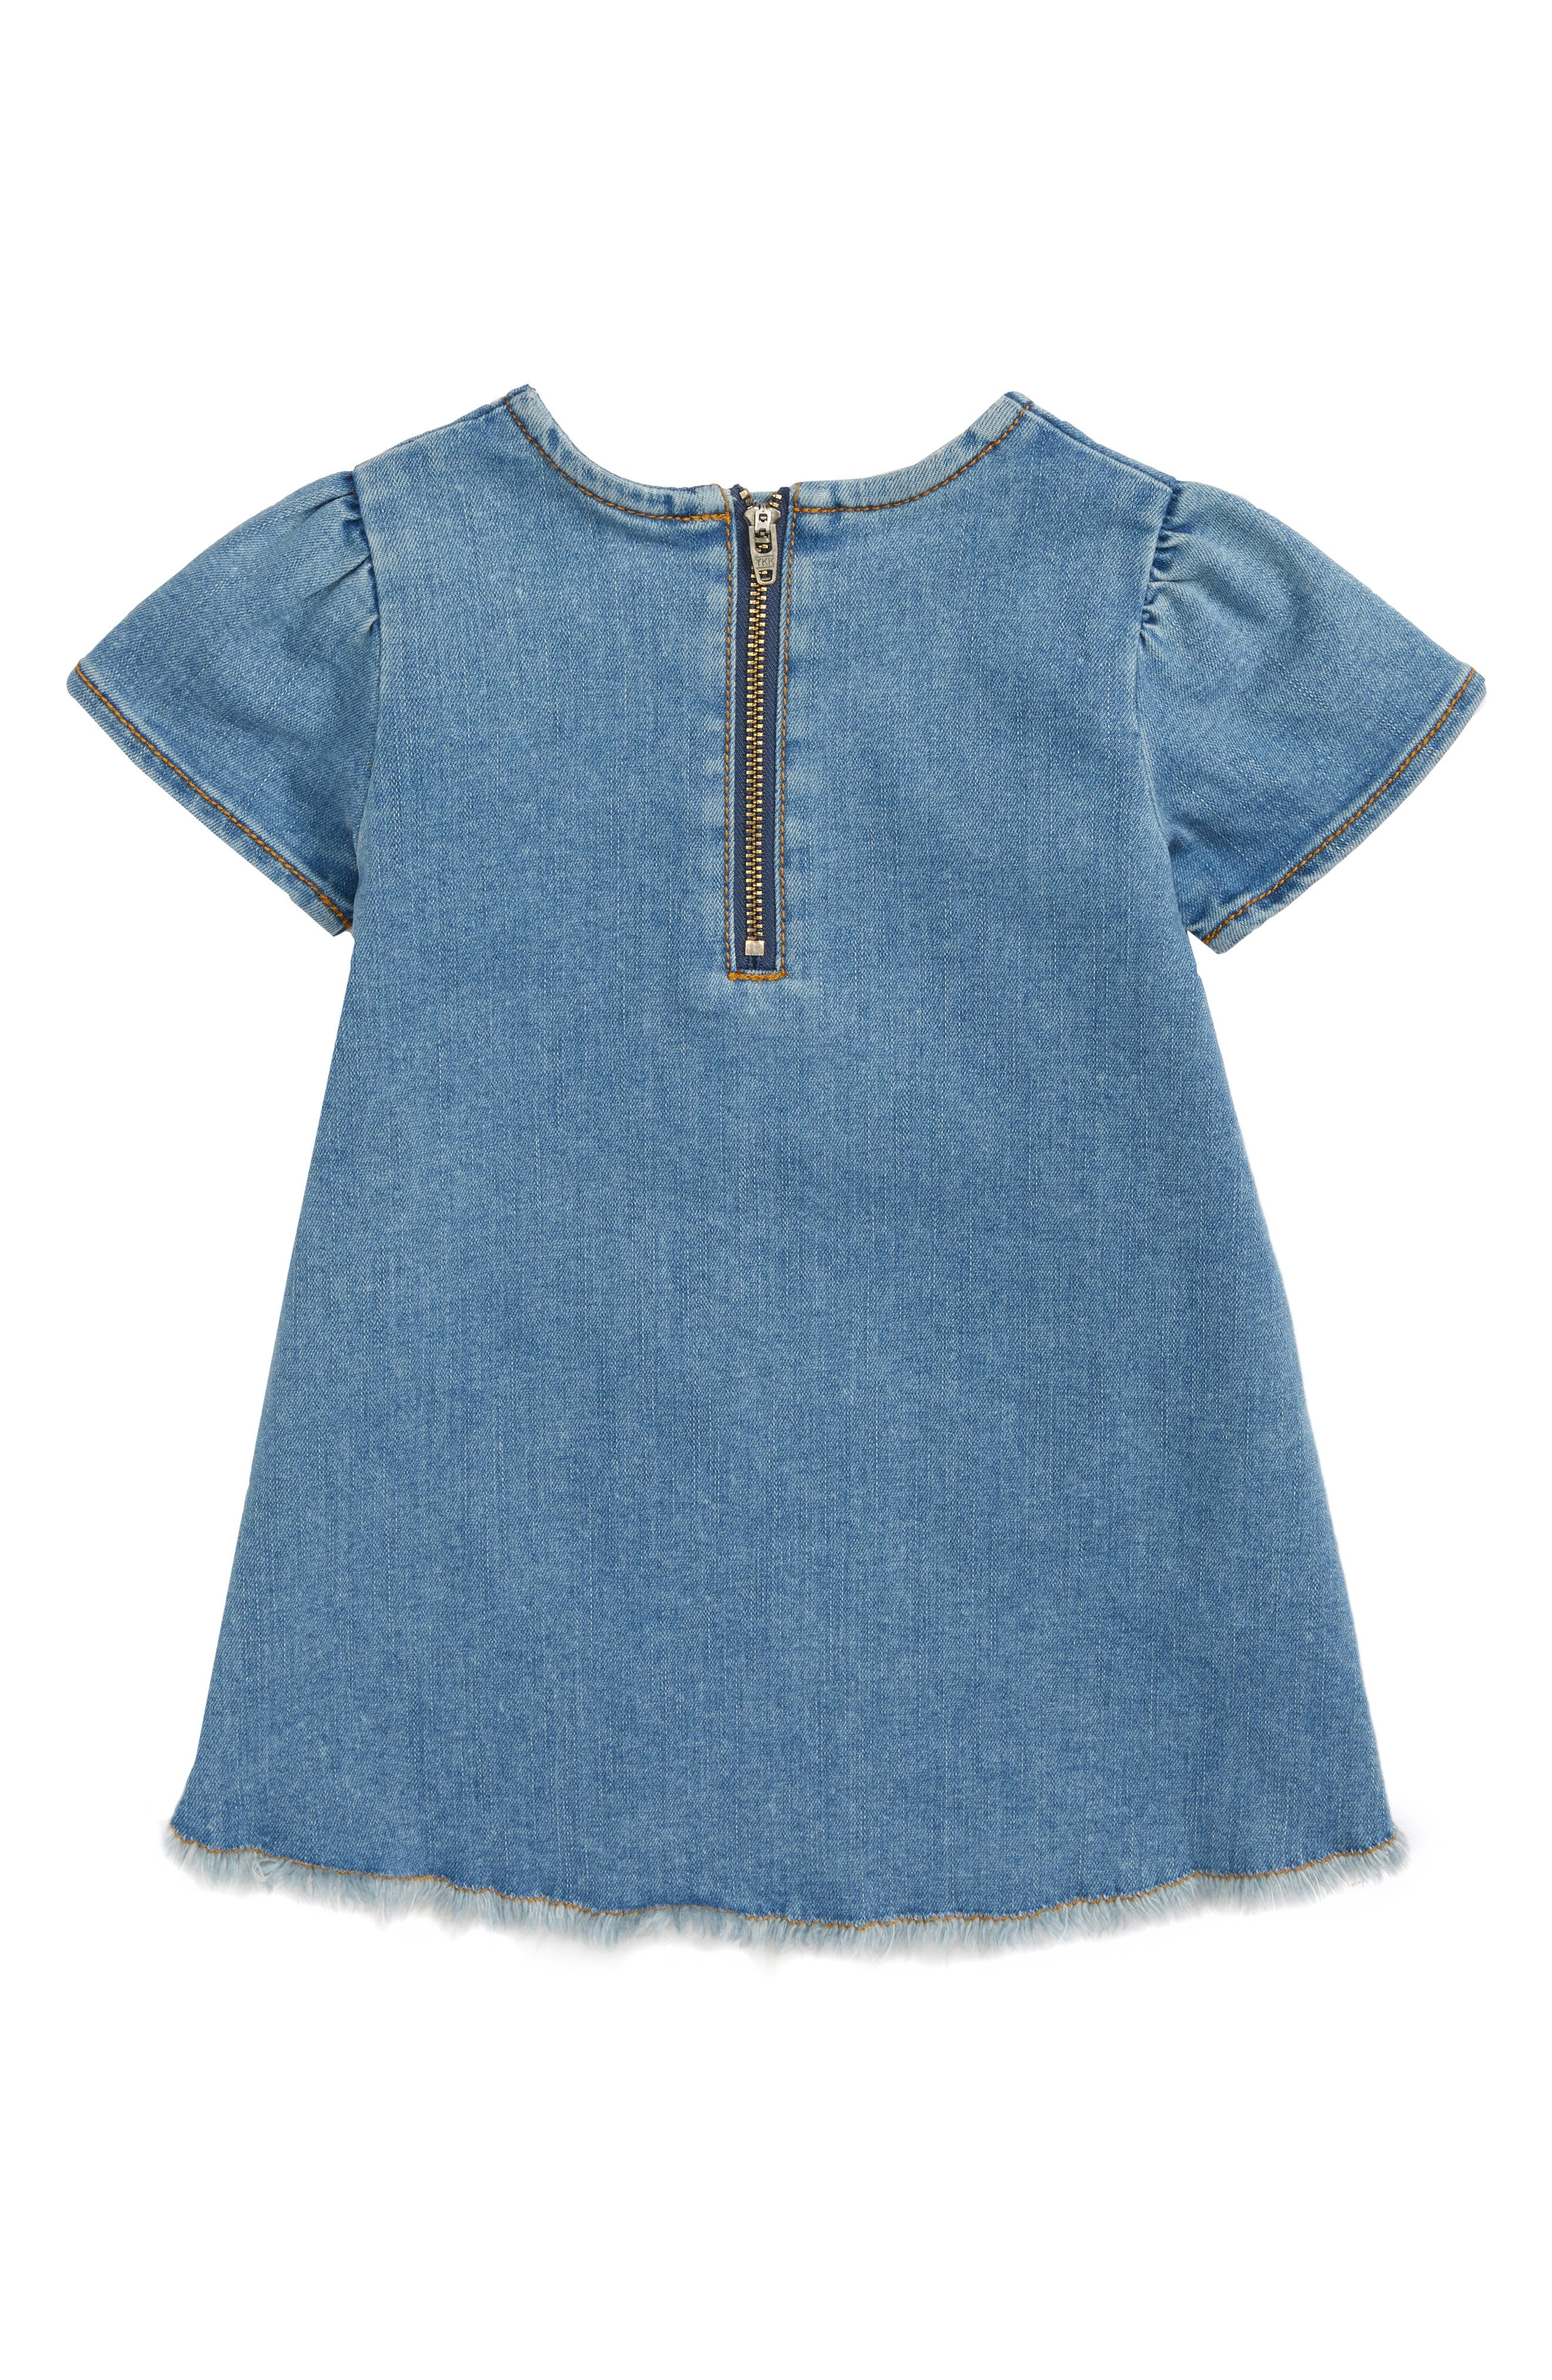 Embroidered Denim Dress,                             Alternate thumbnail 2, color,                             Field Wash